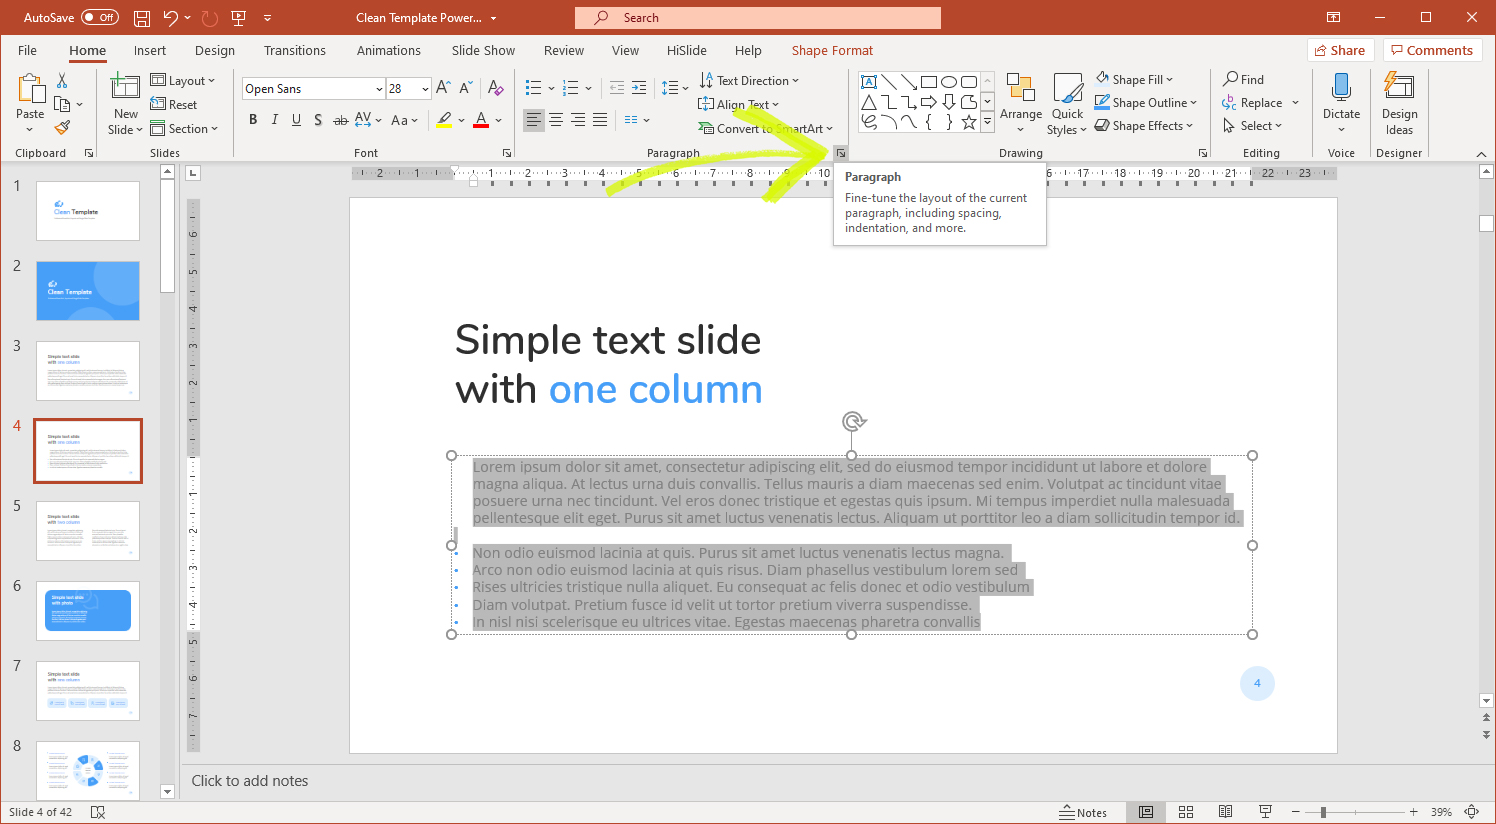 Configuring spaces and paragraphs